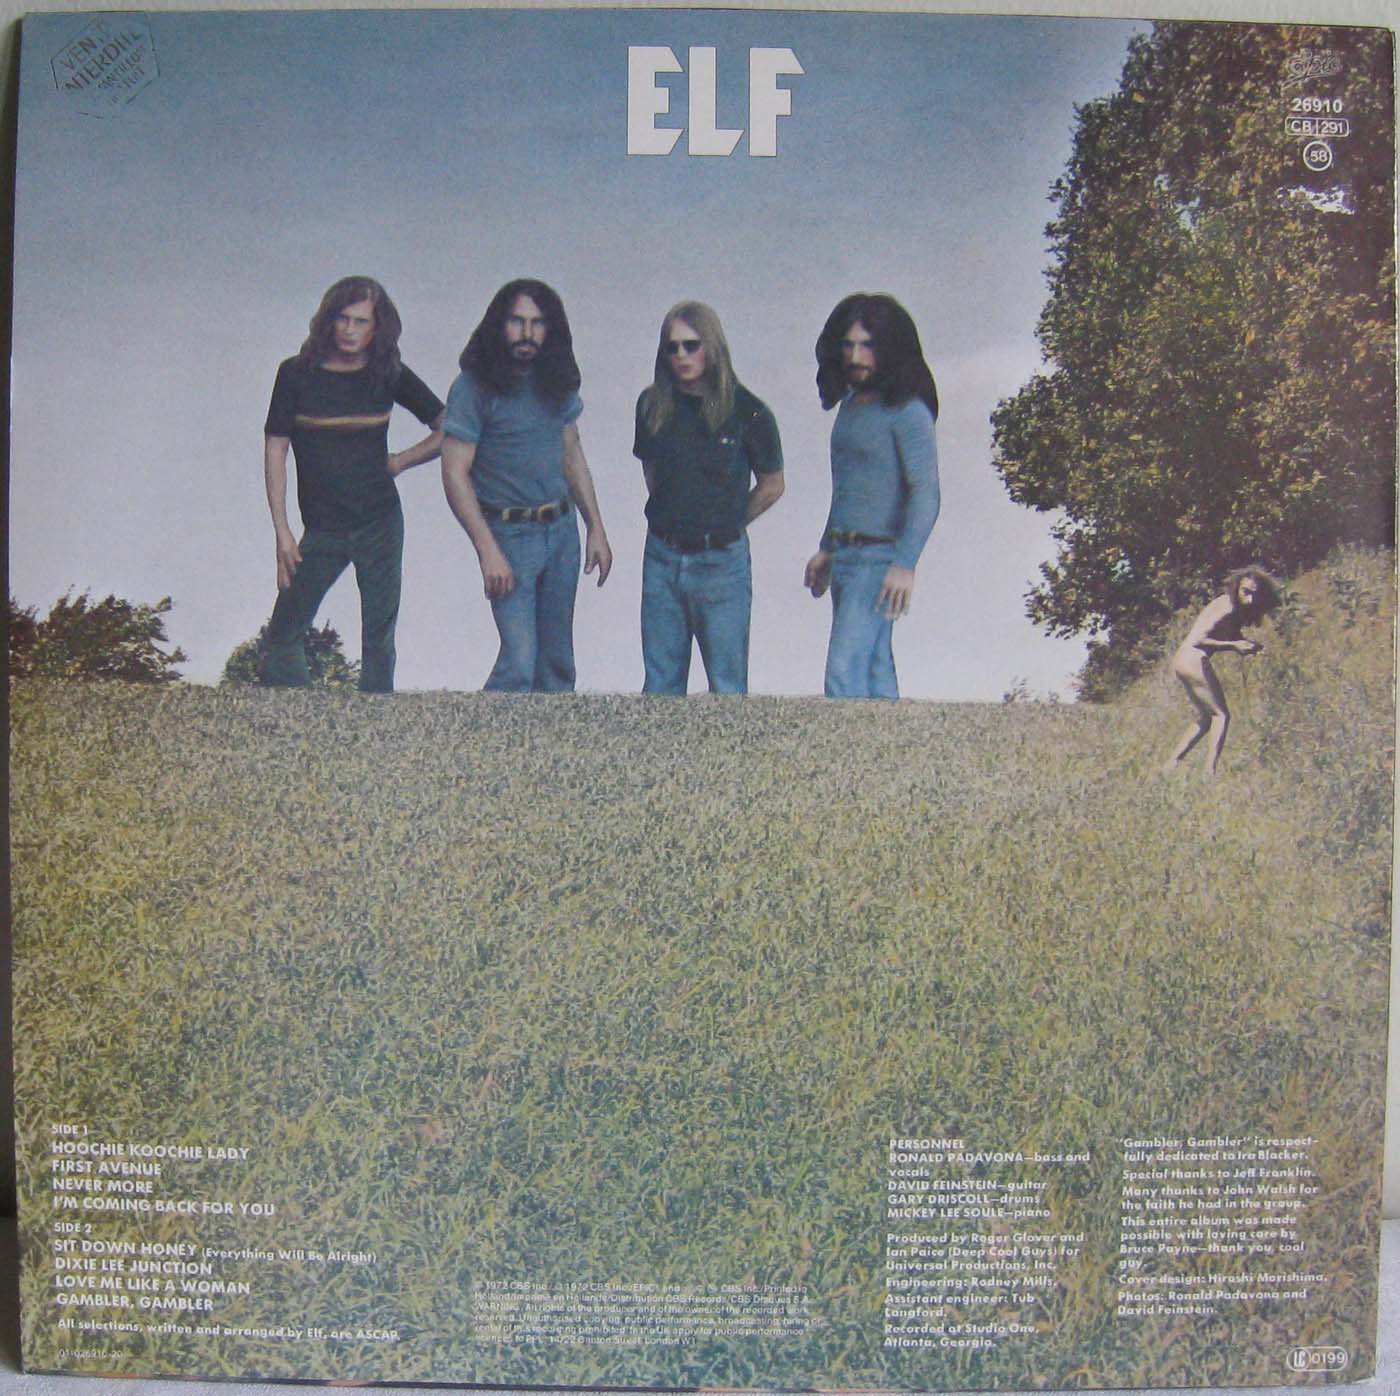 Tapio's Ronnie James Dio Pages: Elf LP Discography, mid/late 1970